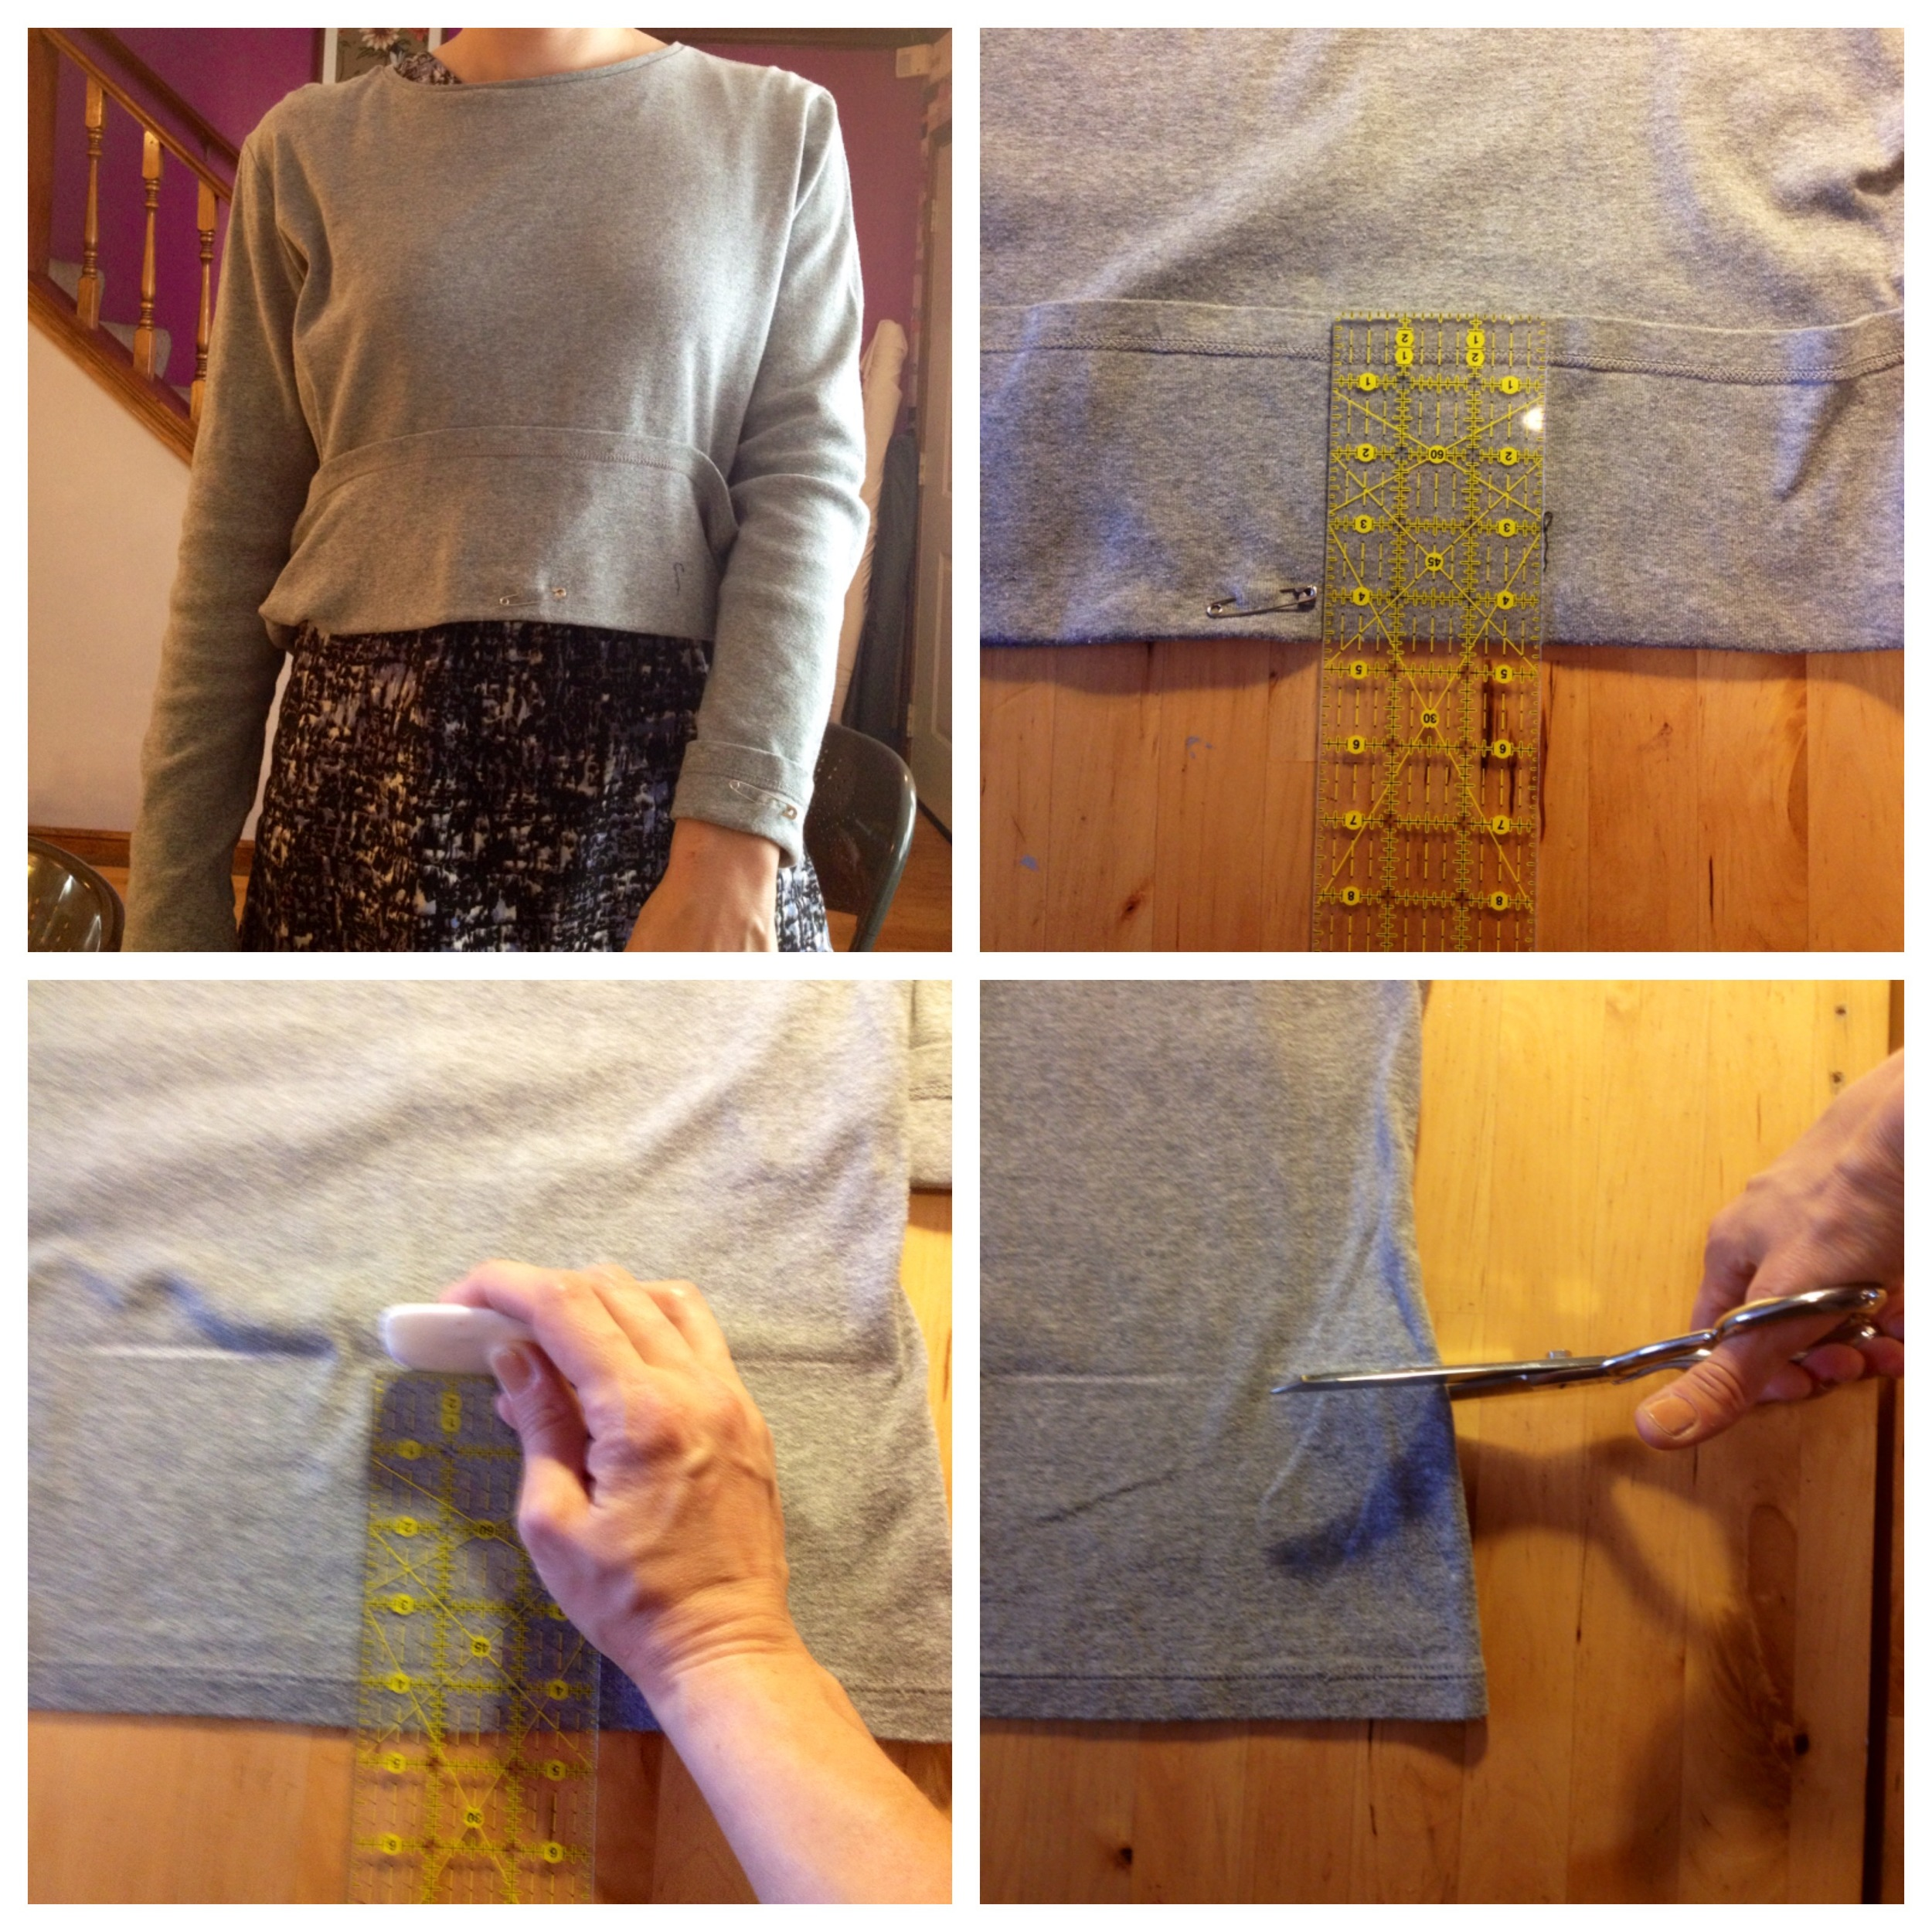 Fair Fit Sewing With Sergers Knitwear Demo 1